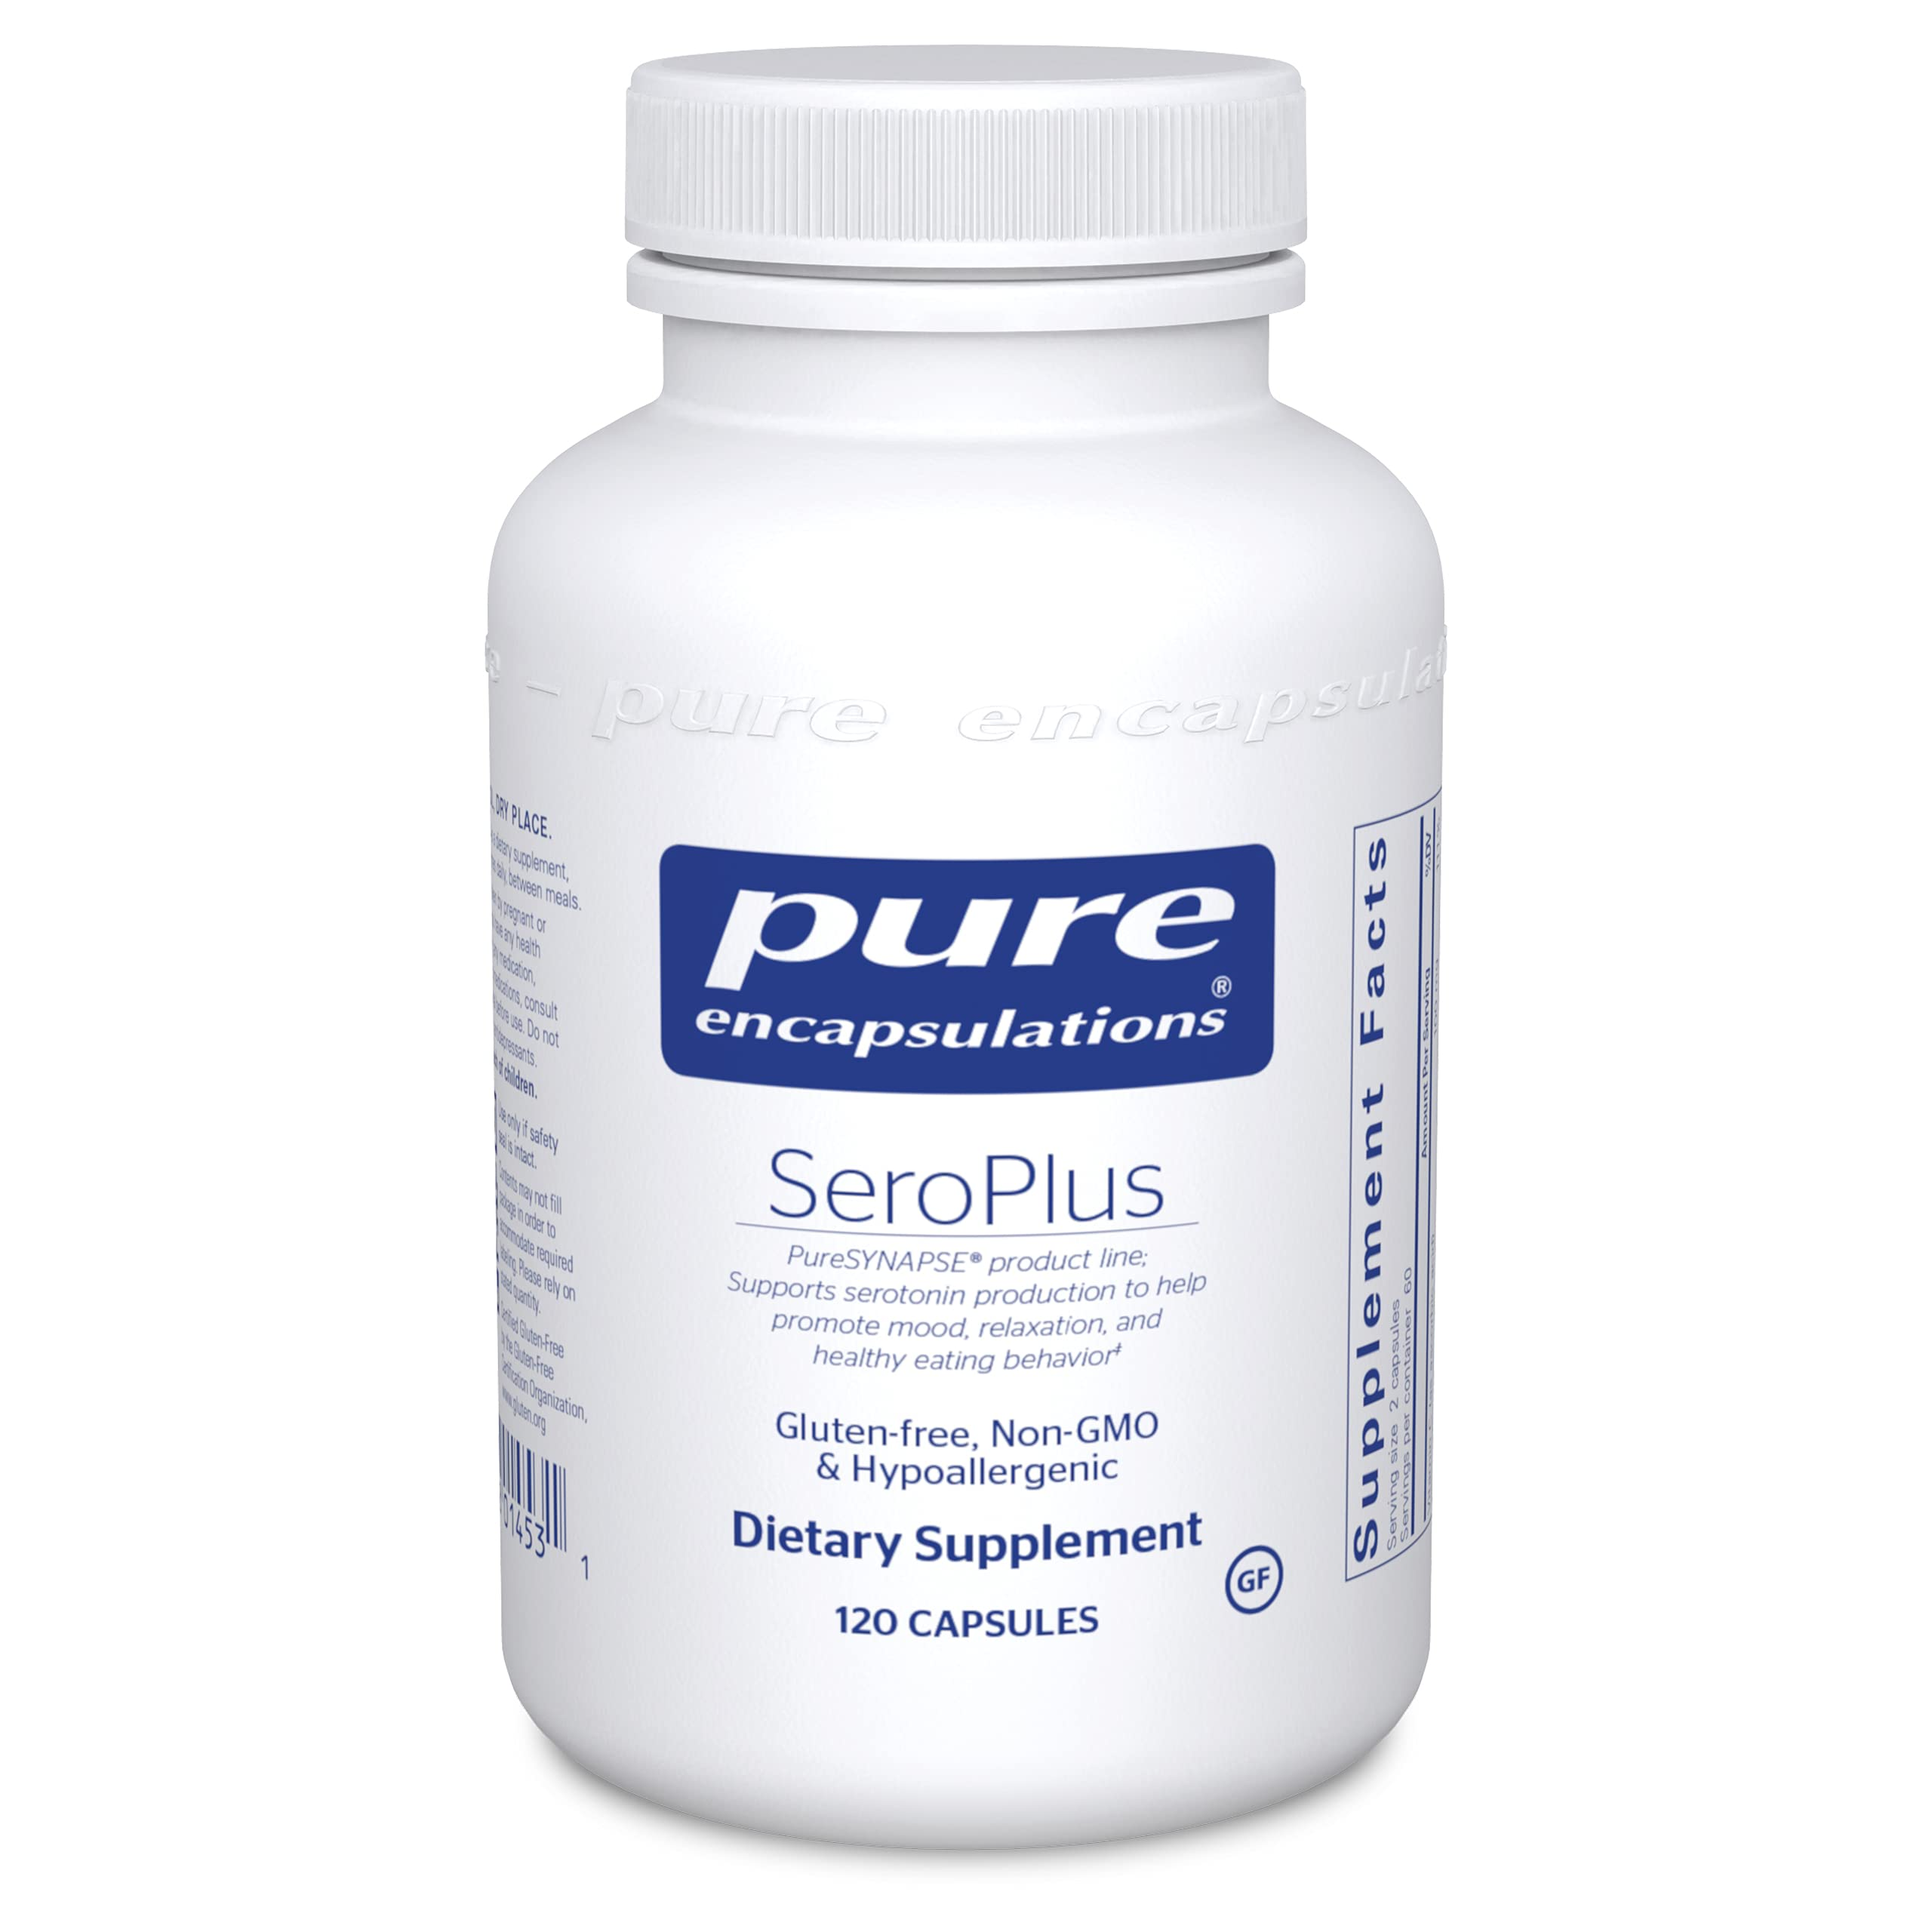 Pure Encapsulations - SeroPlus - Hypoallergenic Serotonin Support to Support Moderate Occasional Stress - 120 Capsules